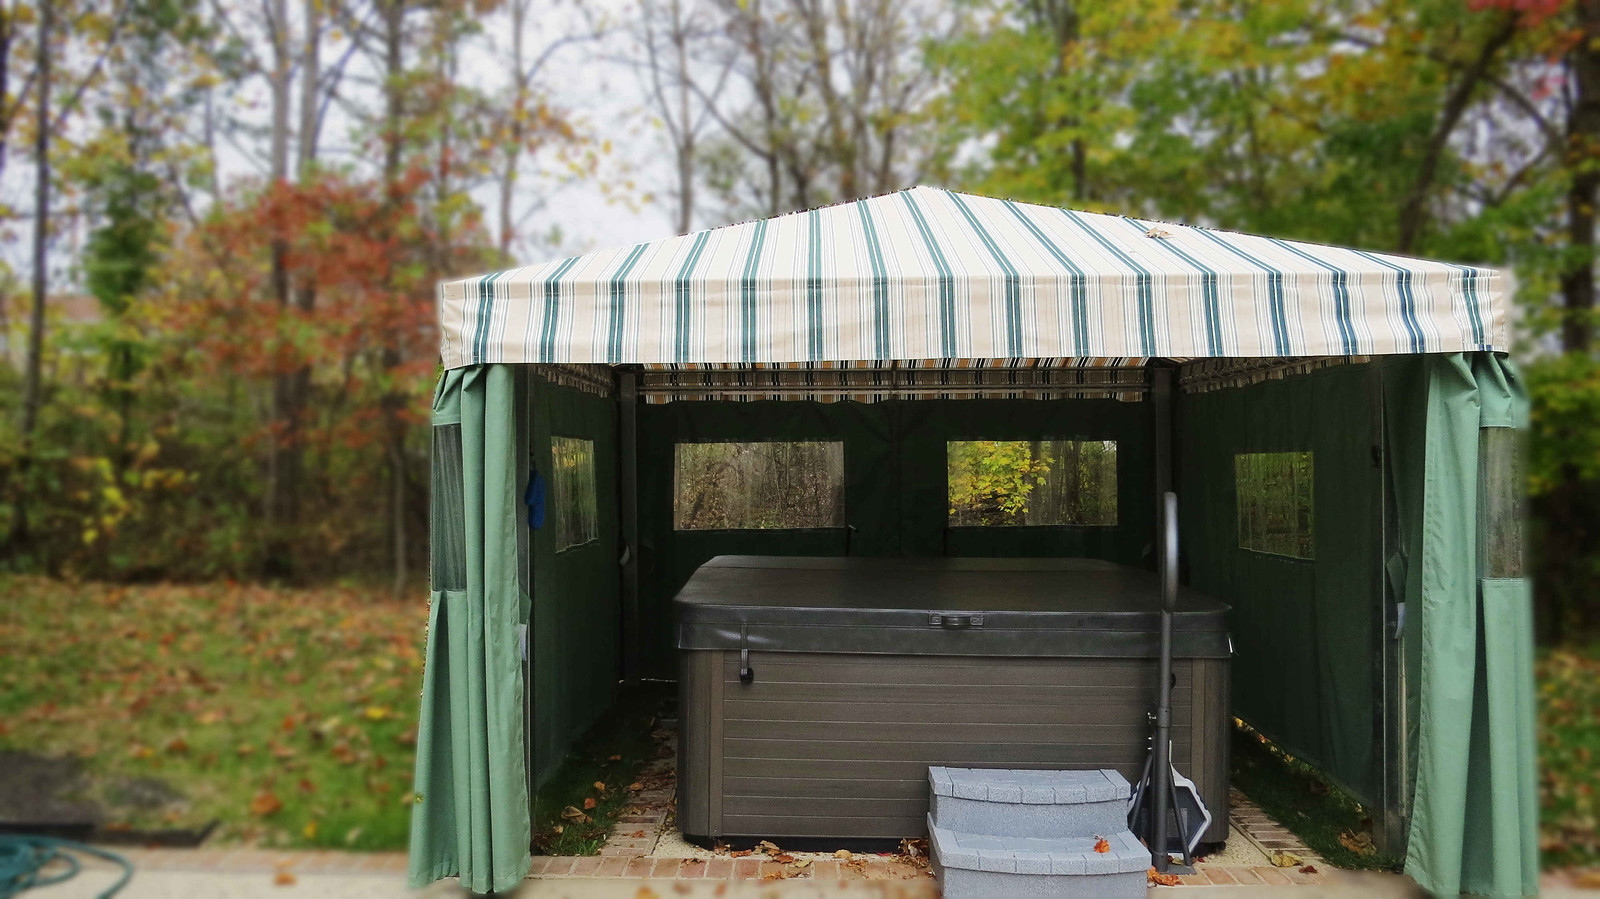 Hot Tub Awning with Privacy Curtains